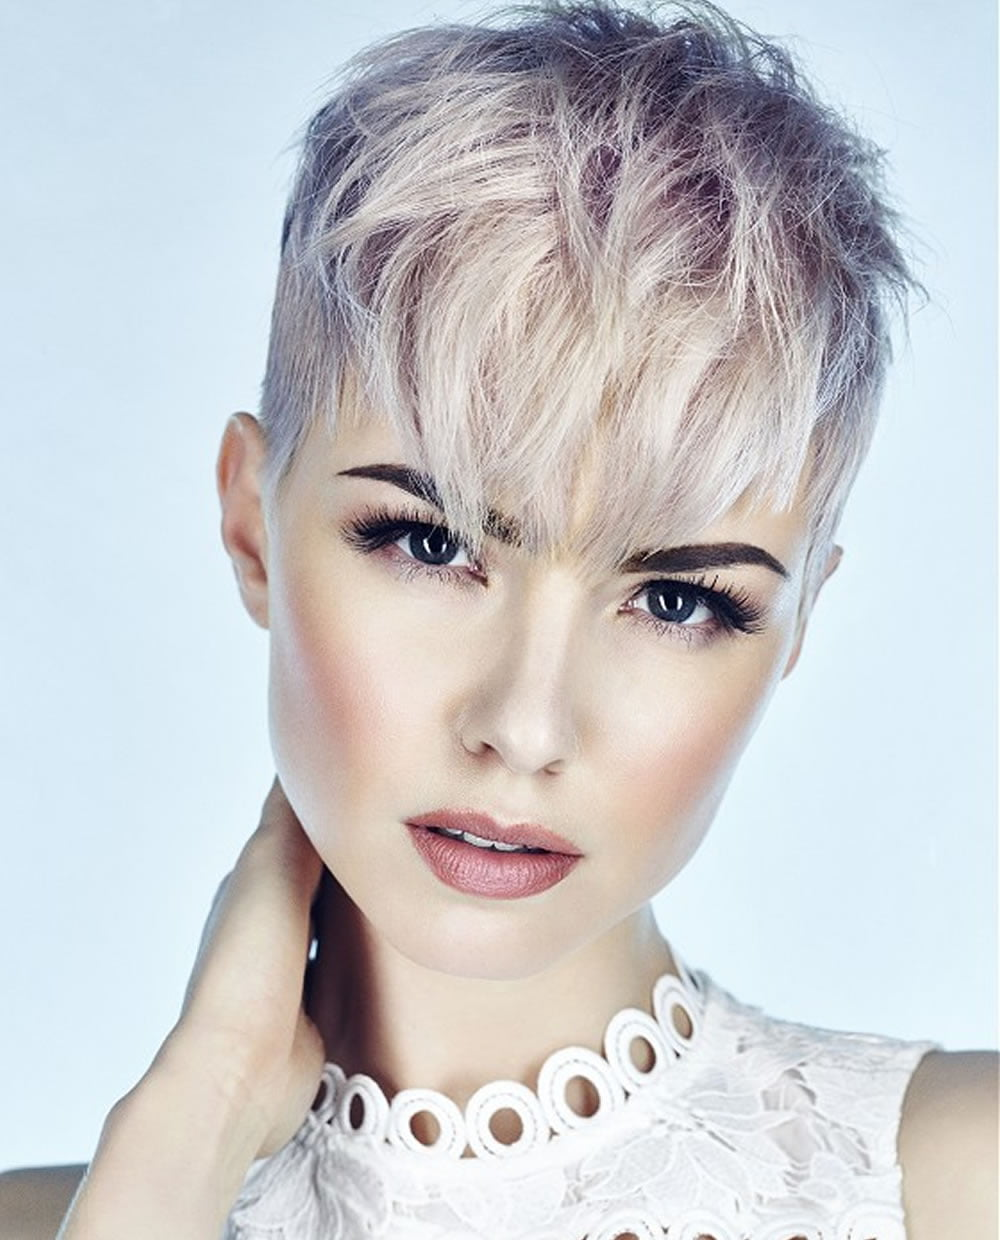 coloring short hair styles grey pixie hair cut amp gray hair colors for hair 5015 | Grey Pixie Hair Cut Gray Hair Colors for Short Hair 27